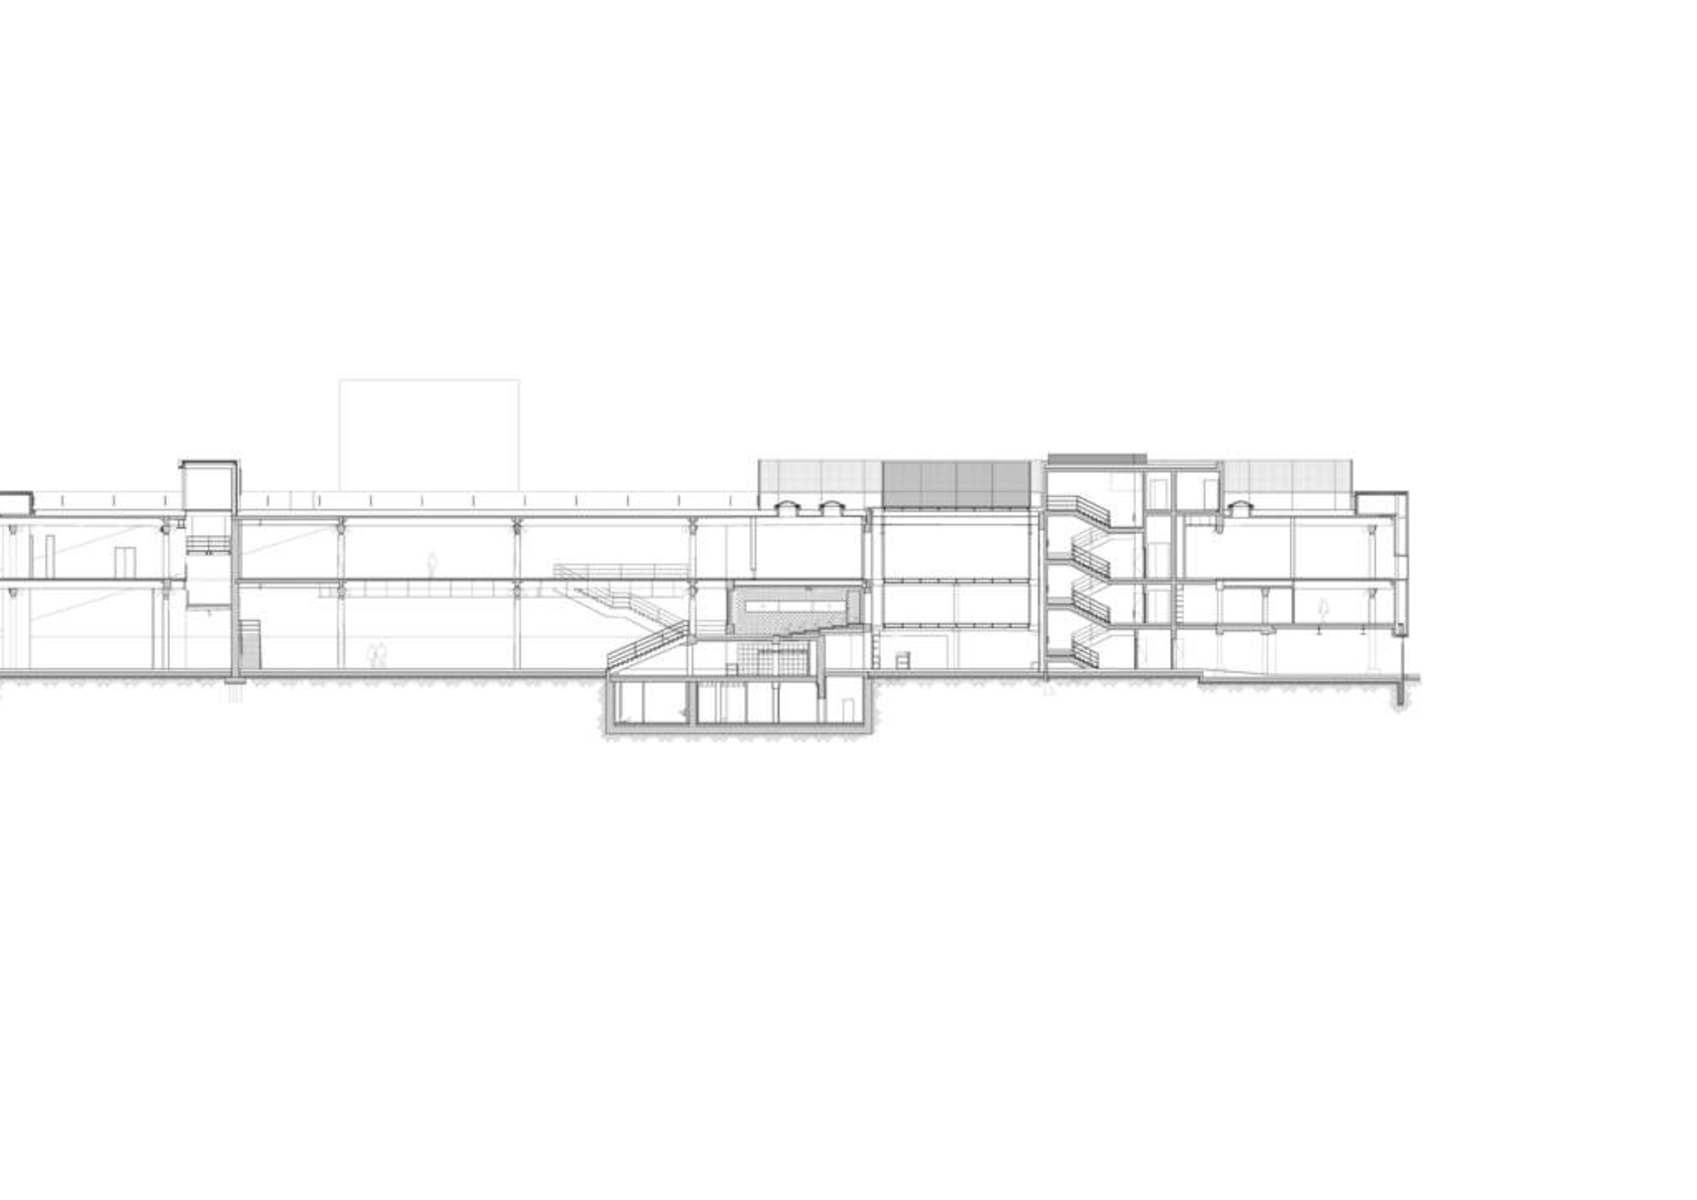 OMA-Rem Koolhaas and the Garage Museum of Contemporary Art, Moscow